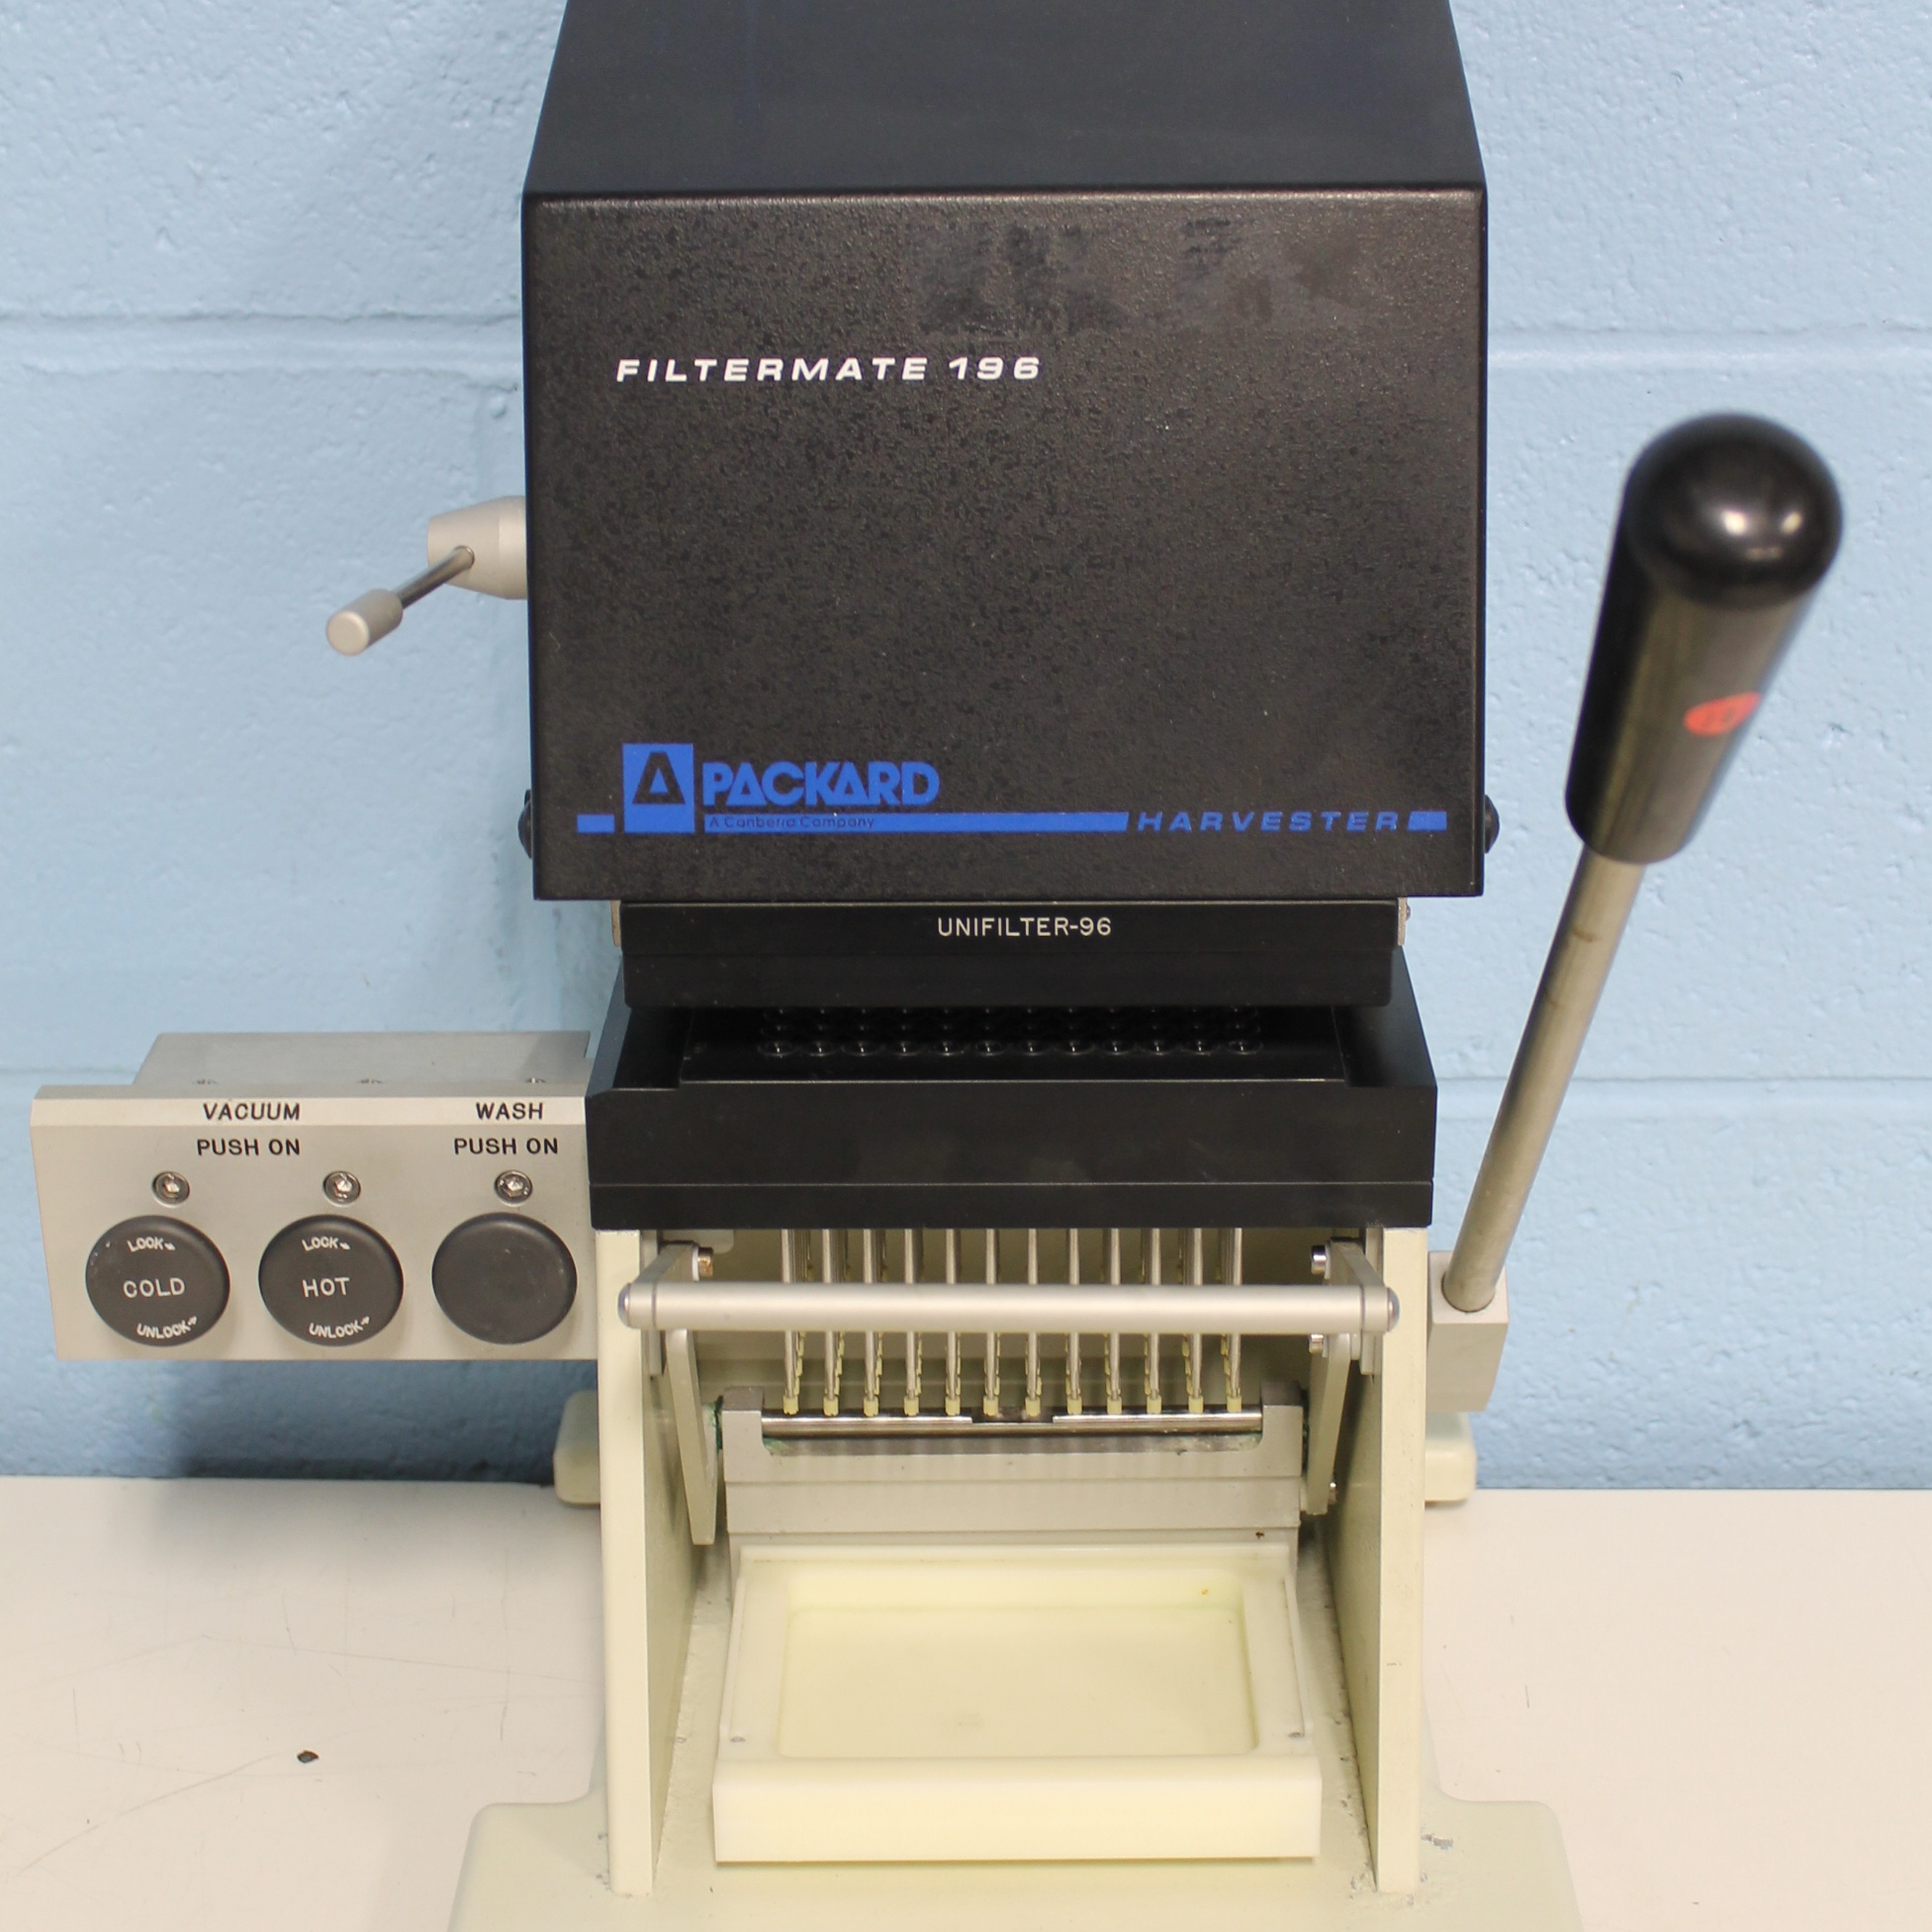 Packard BioScience Company Filtermate 196 Harvester Image